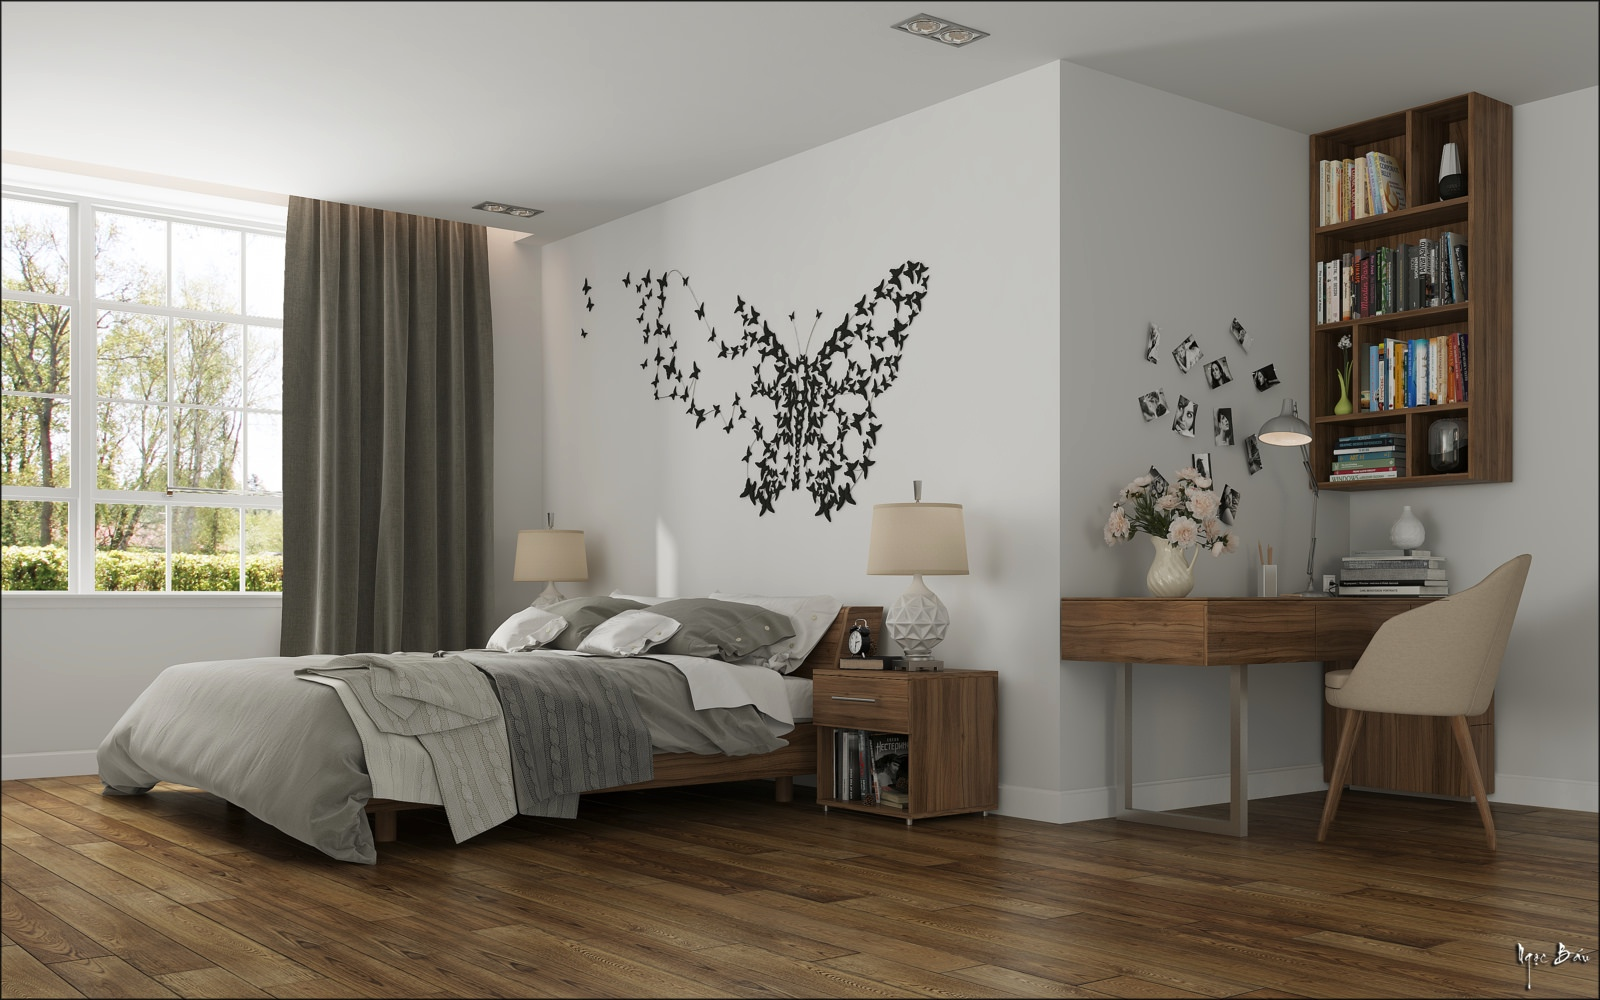 Bedroom butterfly wall art interior design ideas - Idee deco pour chambre adulte ...